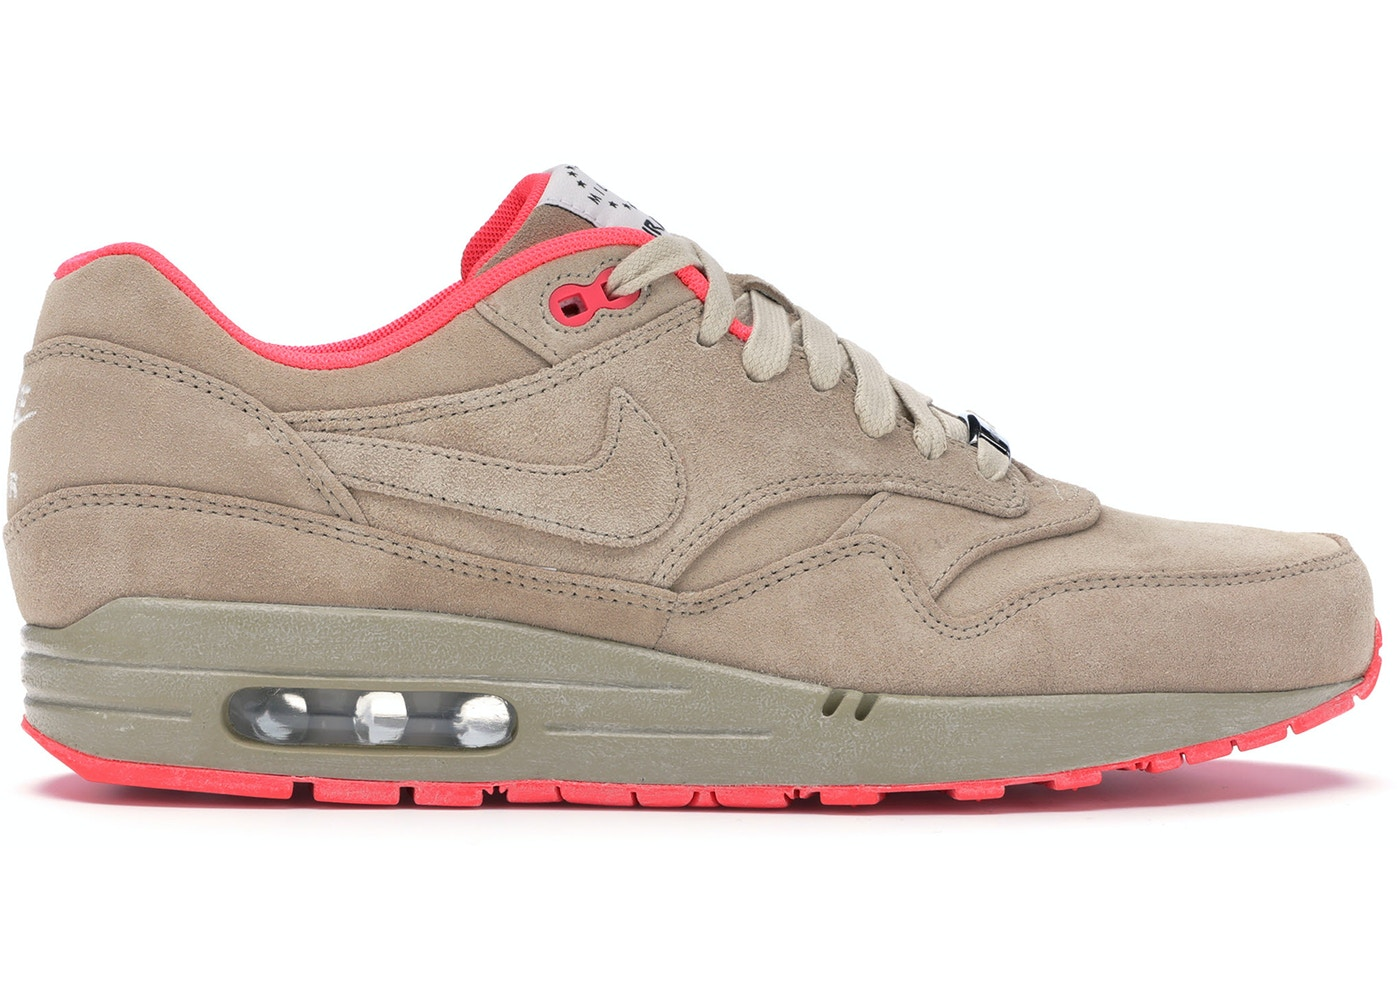 on sale 7f3f8 1d960 Nike Air Max 1 Shoes - Price Premium